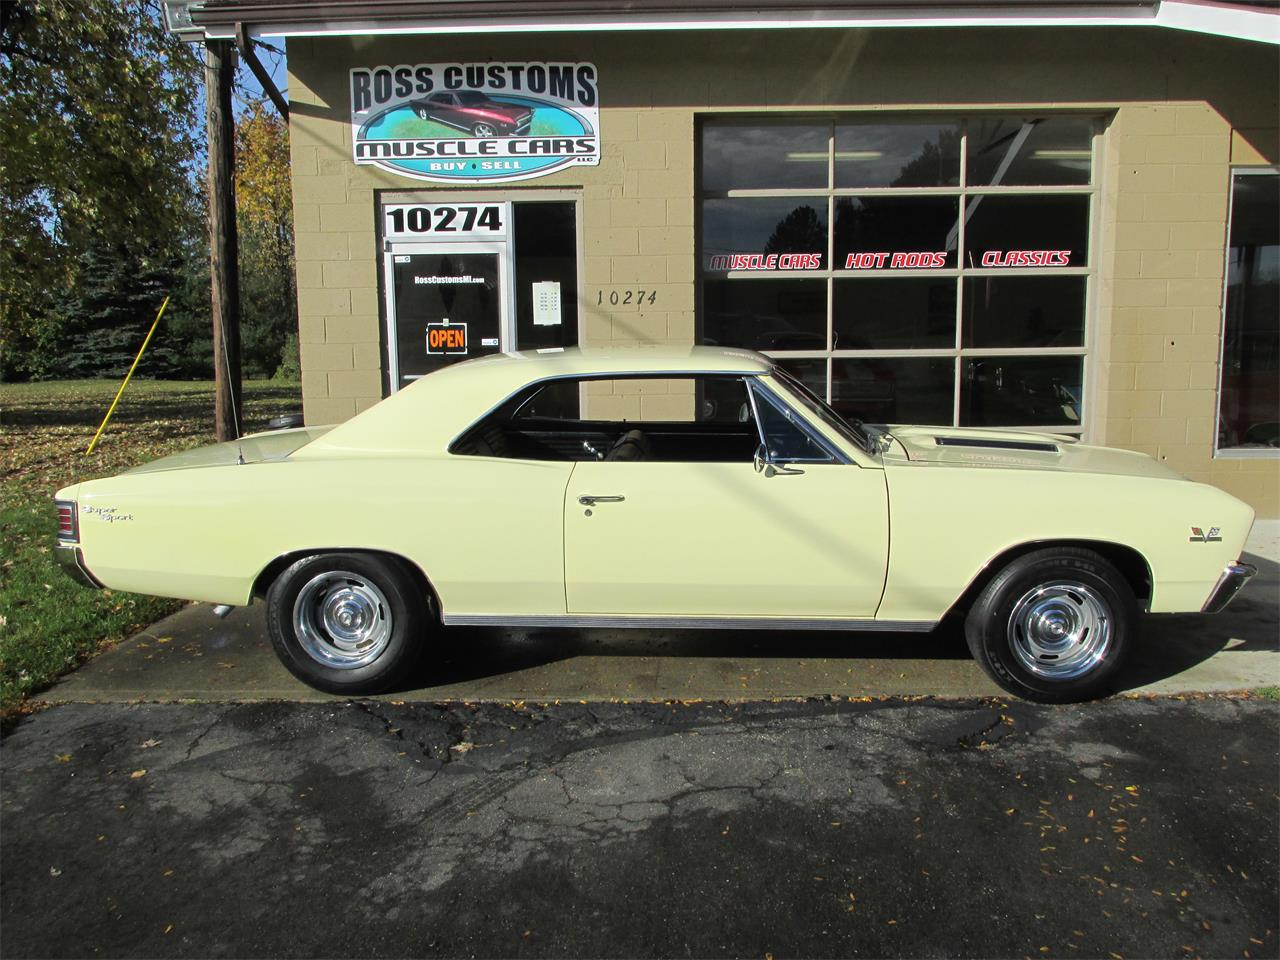 Large Picture of '67 Chevelle SS 396 - 138 VIN - Factory AC - L4H8